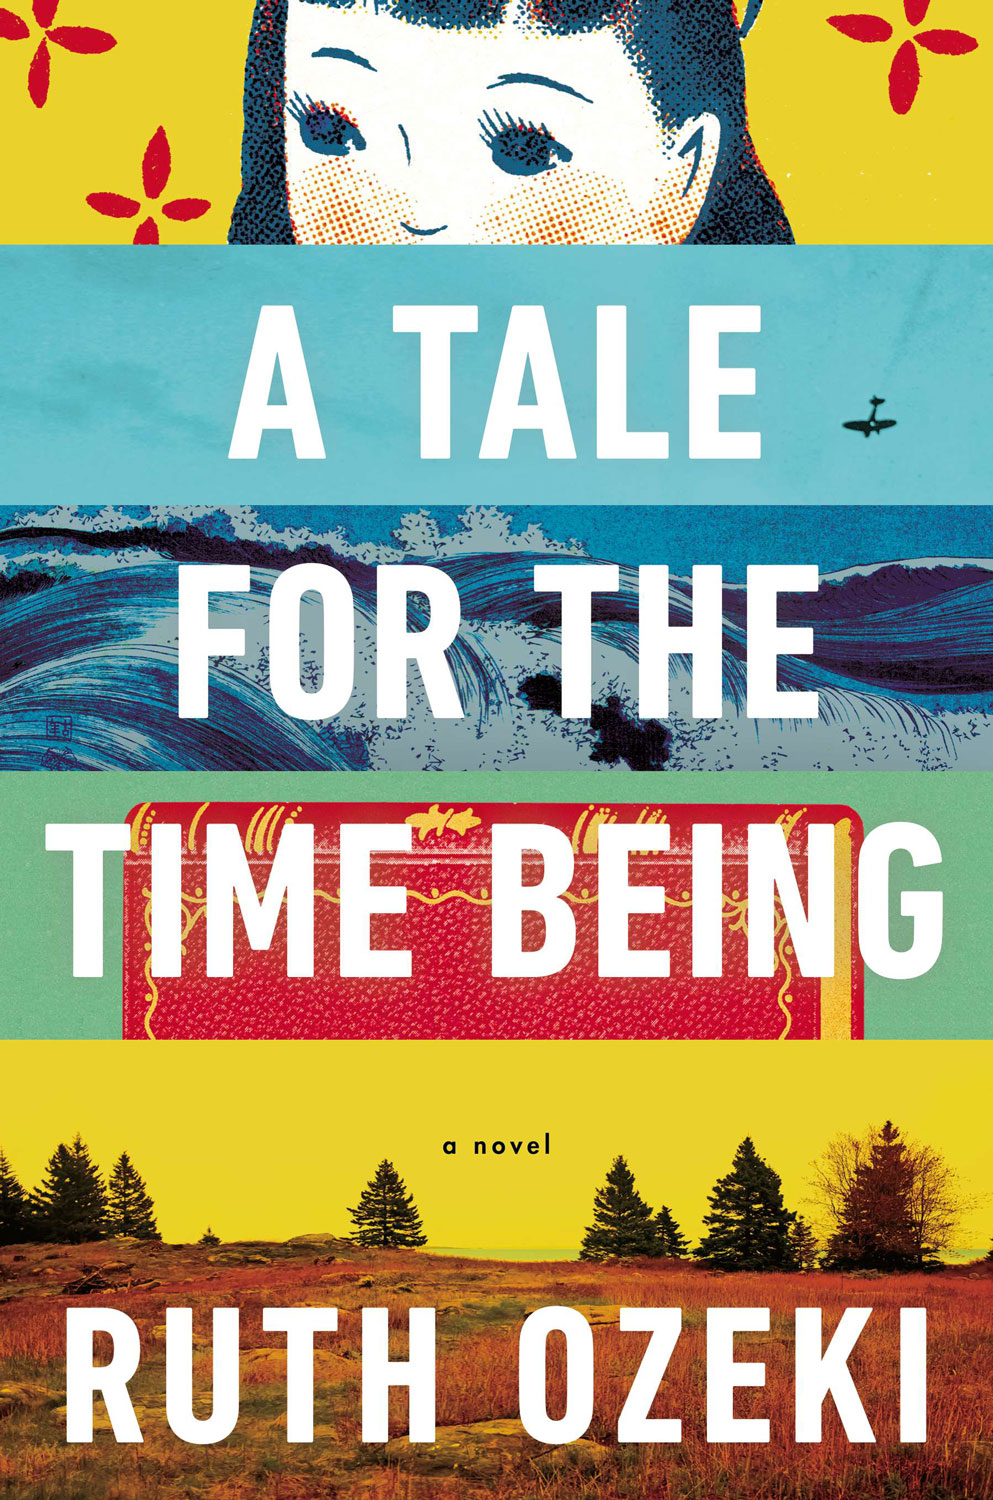 Ruth Ozeki, A Tale for the Time Being (2013)